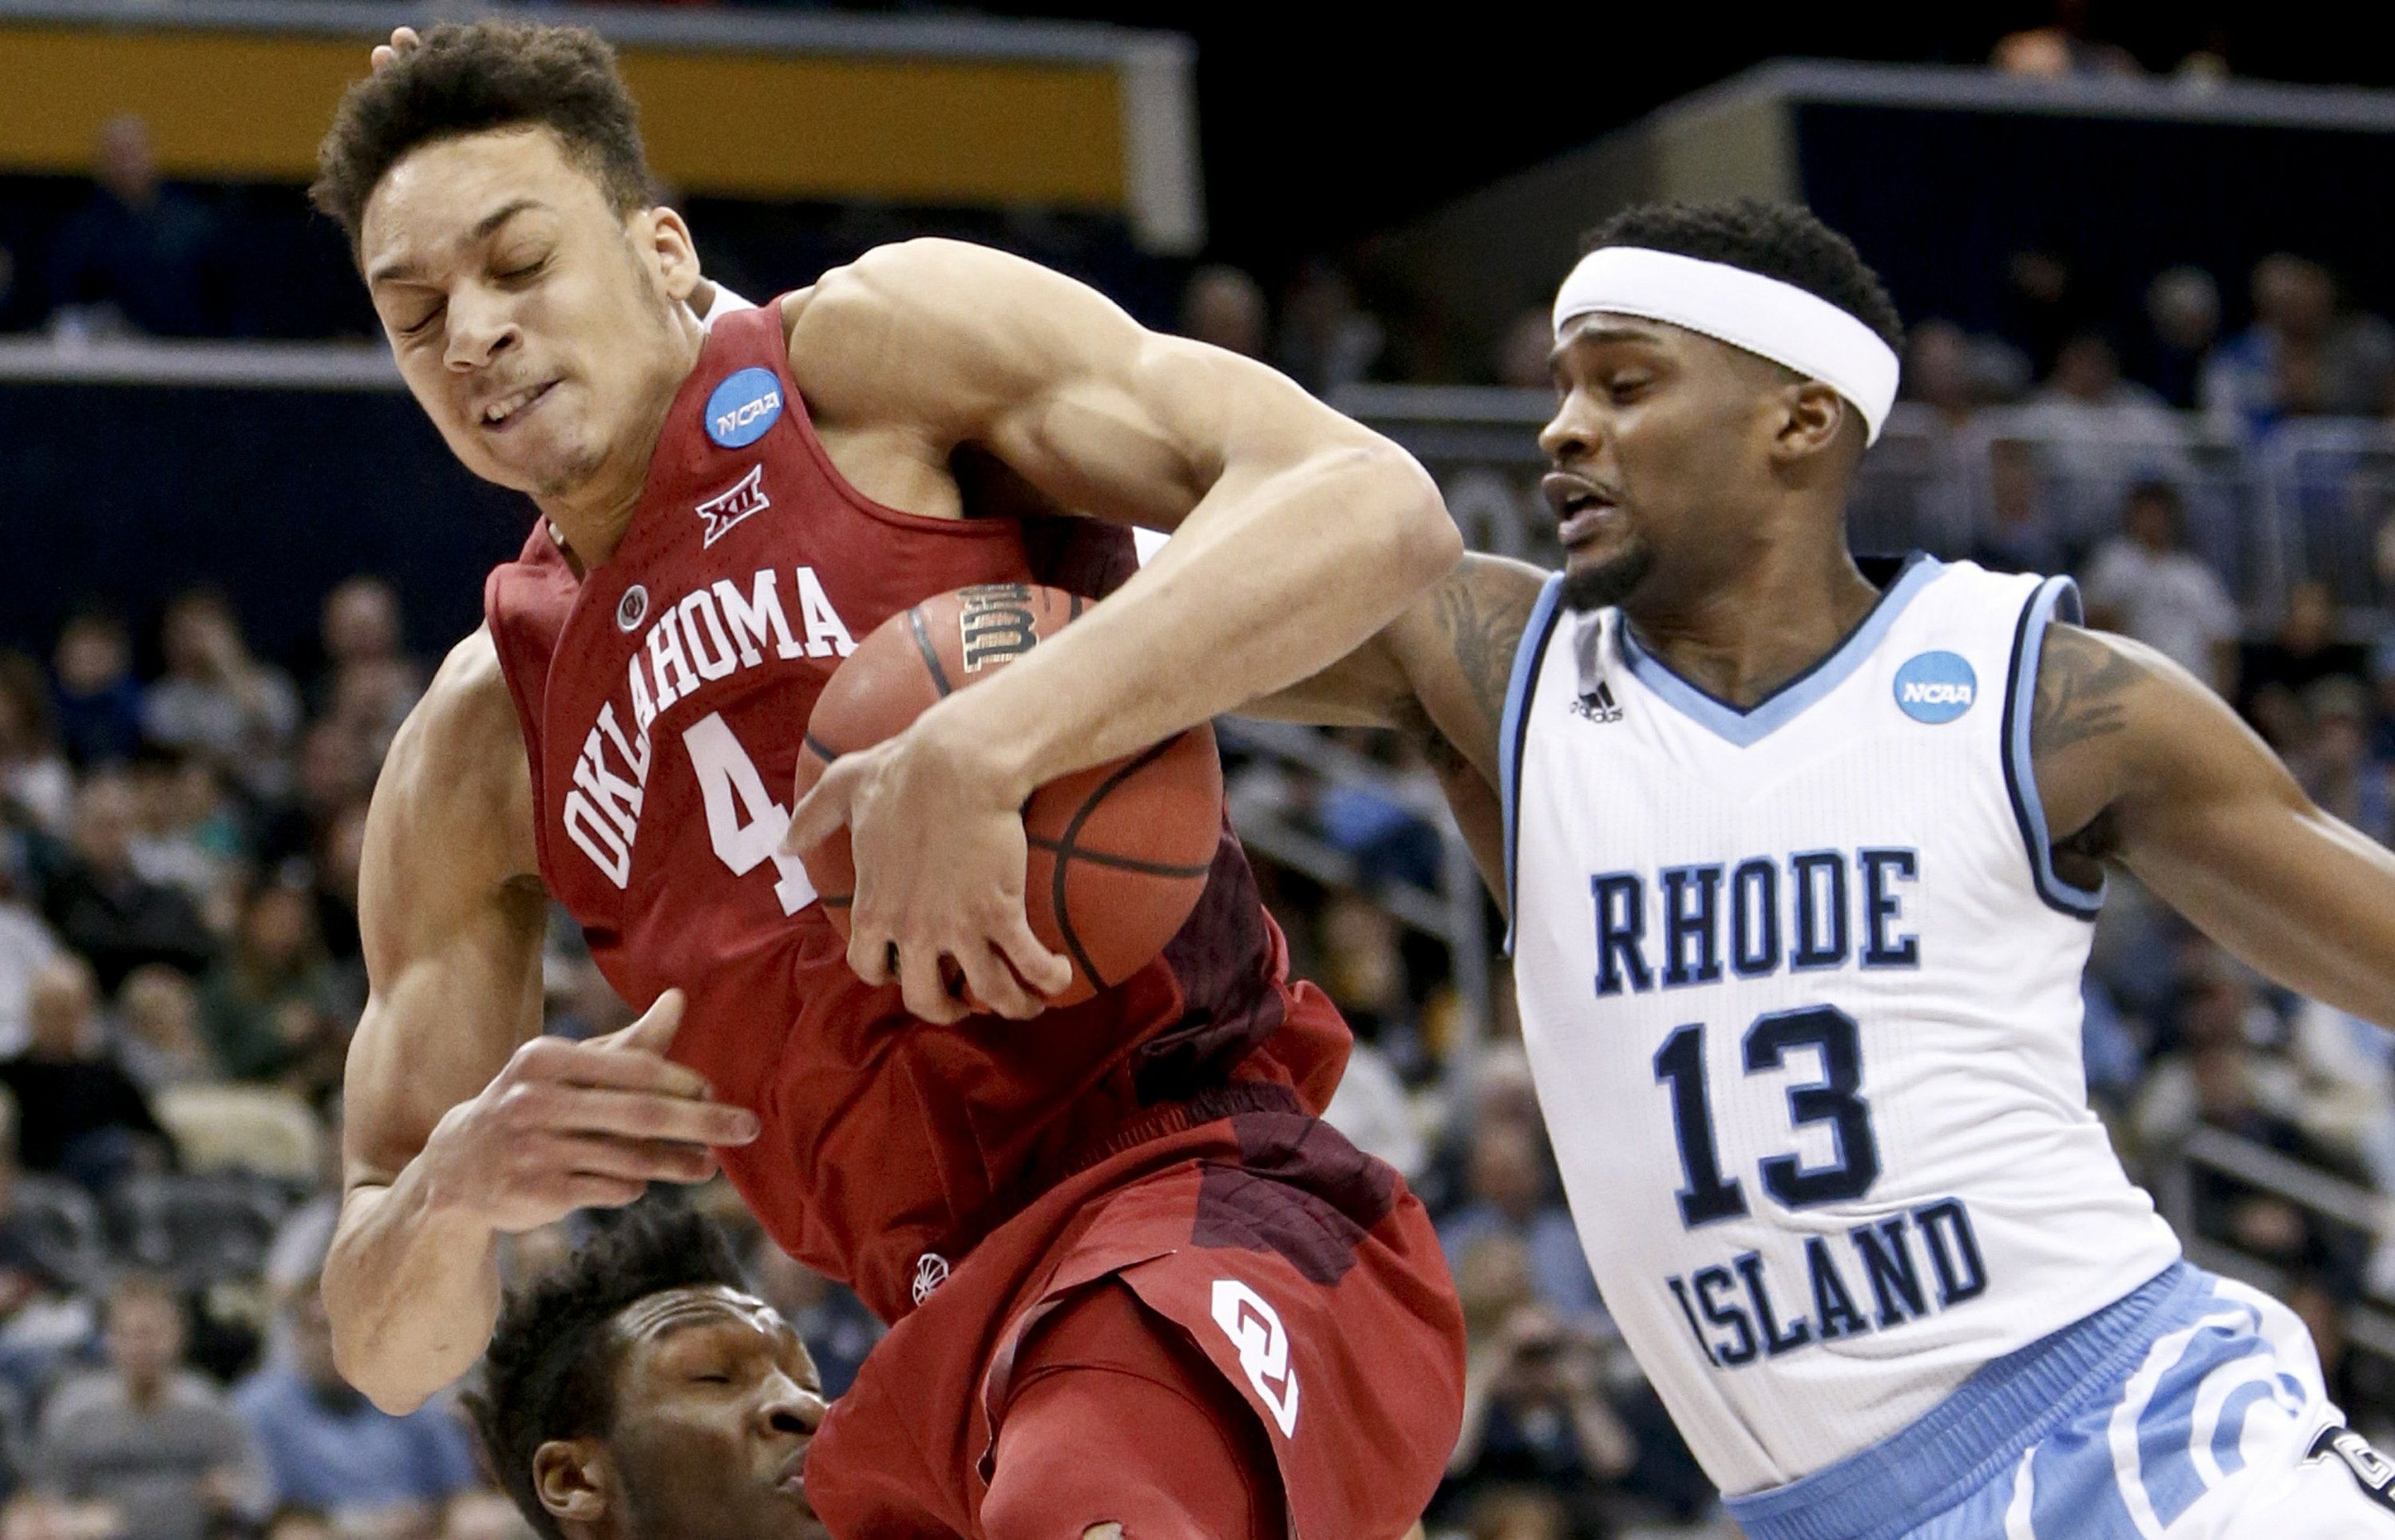 Rhode Island outlasts Young, Oklahoma 83-78 in overtime